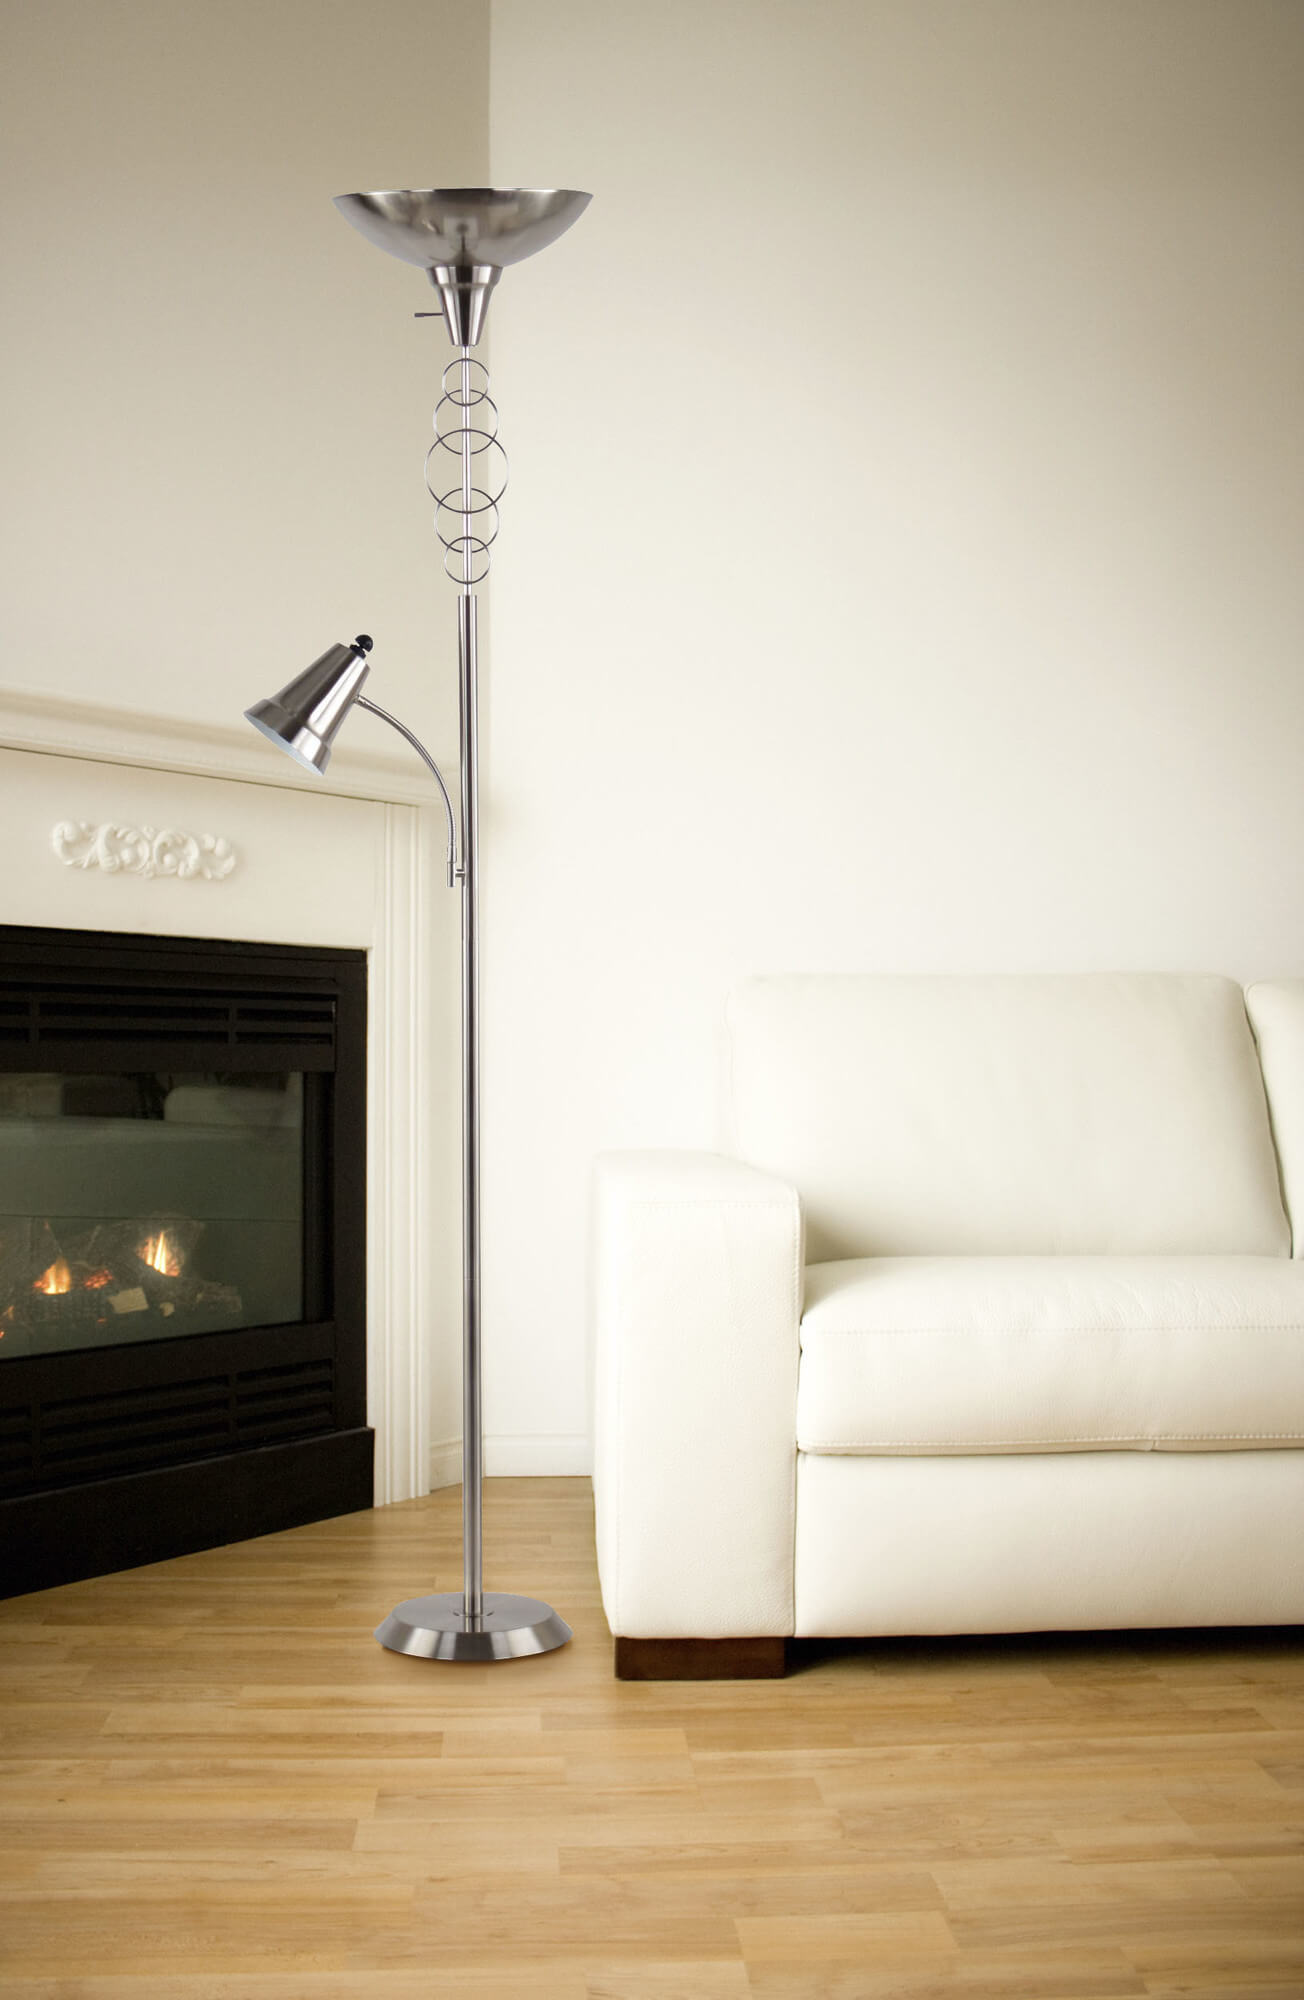 Our first example is a contemporary brushed nickel model, with a secondary downward-facing lamp for reading.